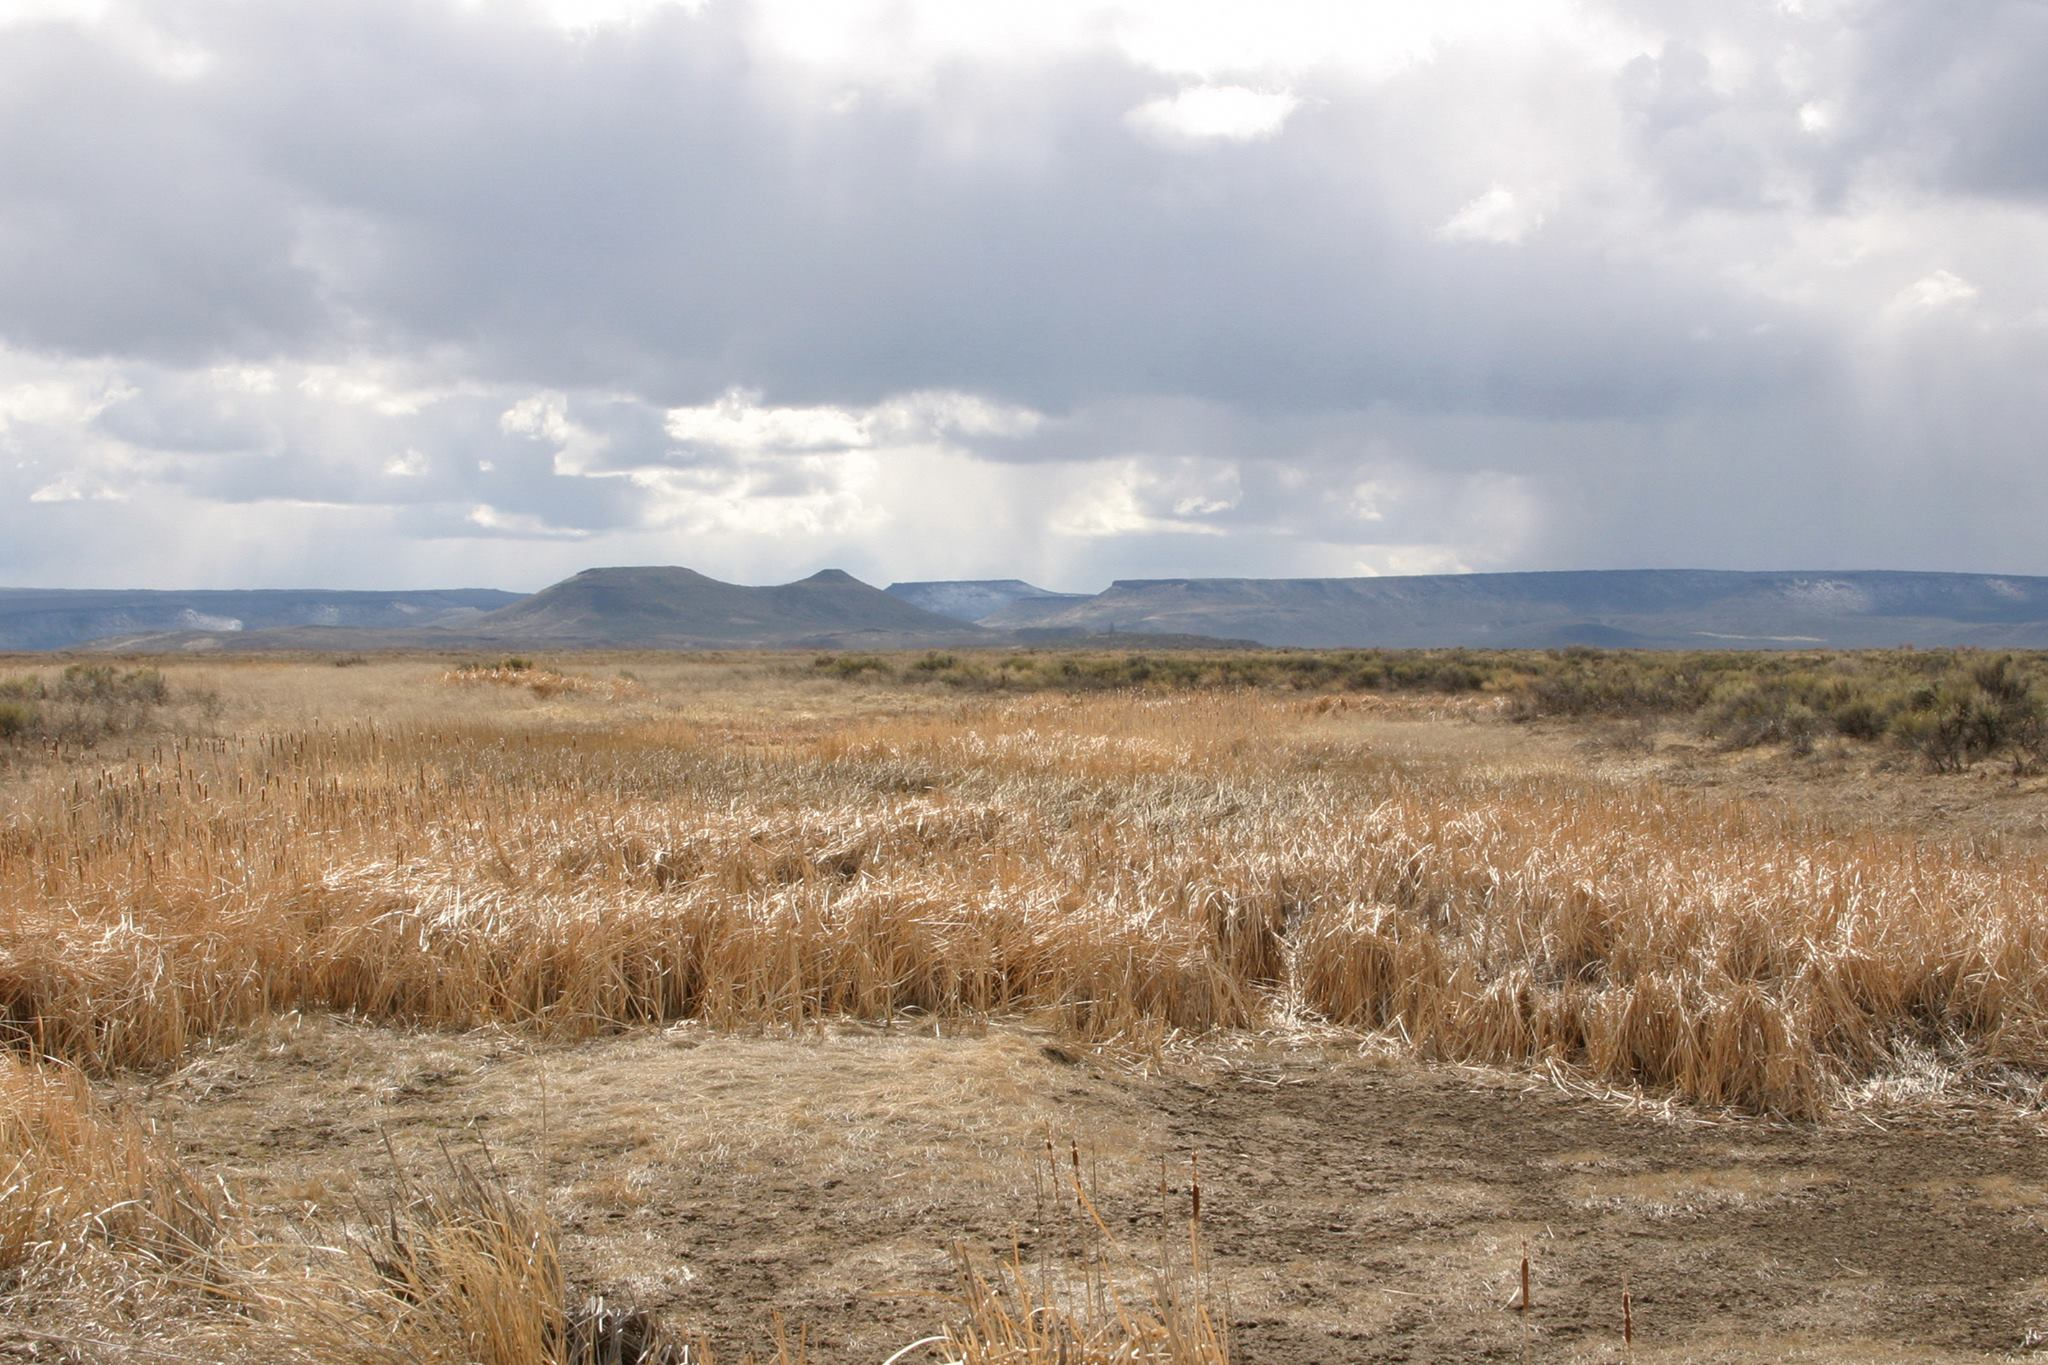 Burns Paiute Tribe might seek to reopen judgment for stolen lands